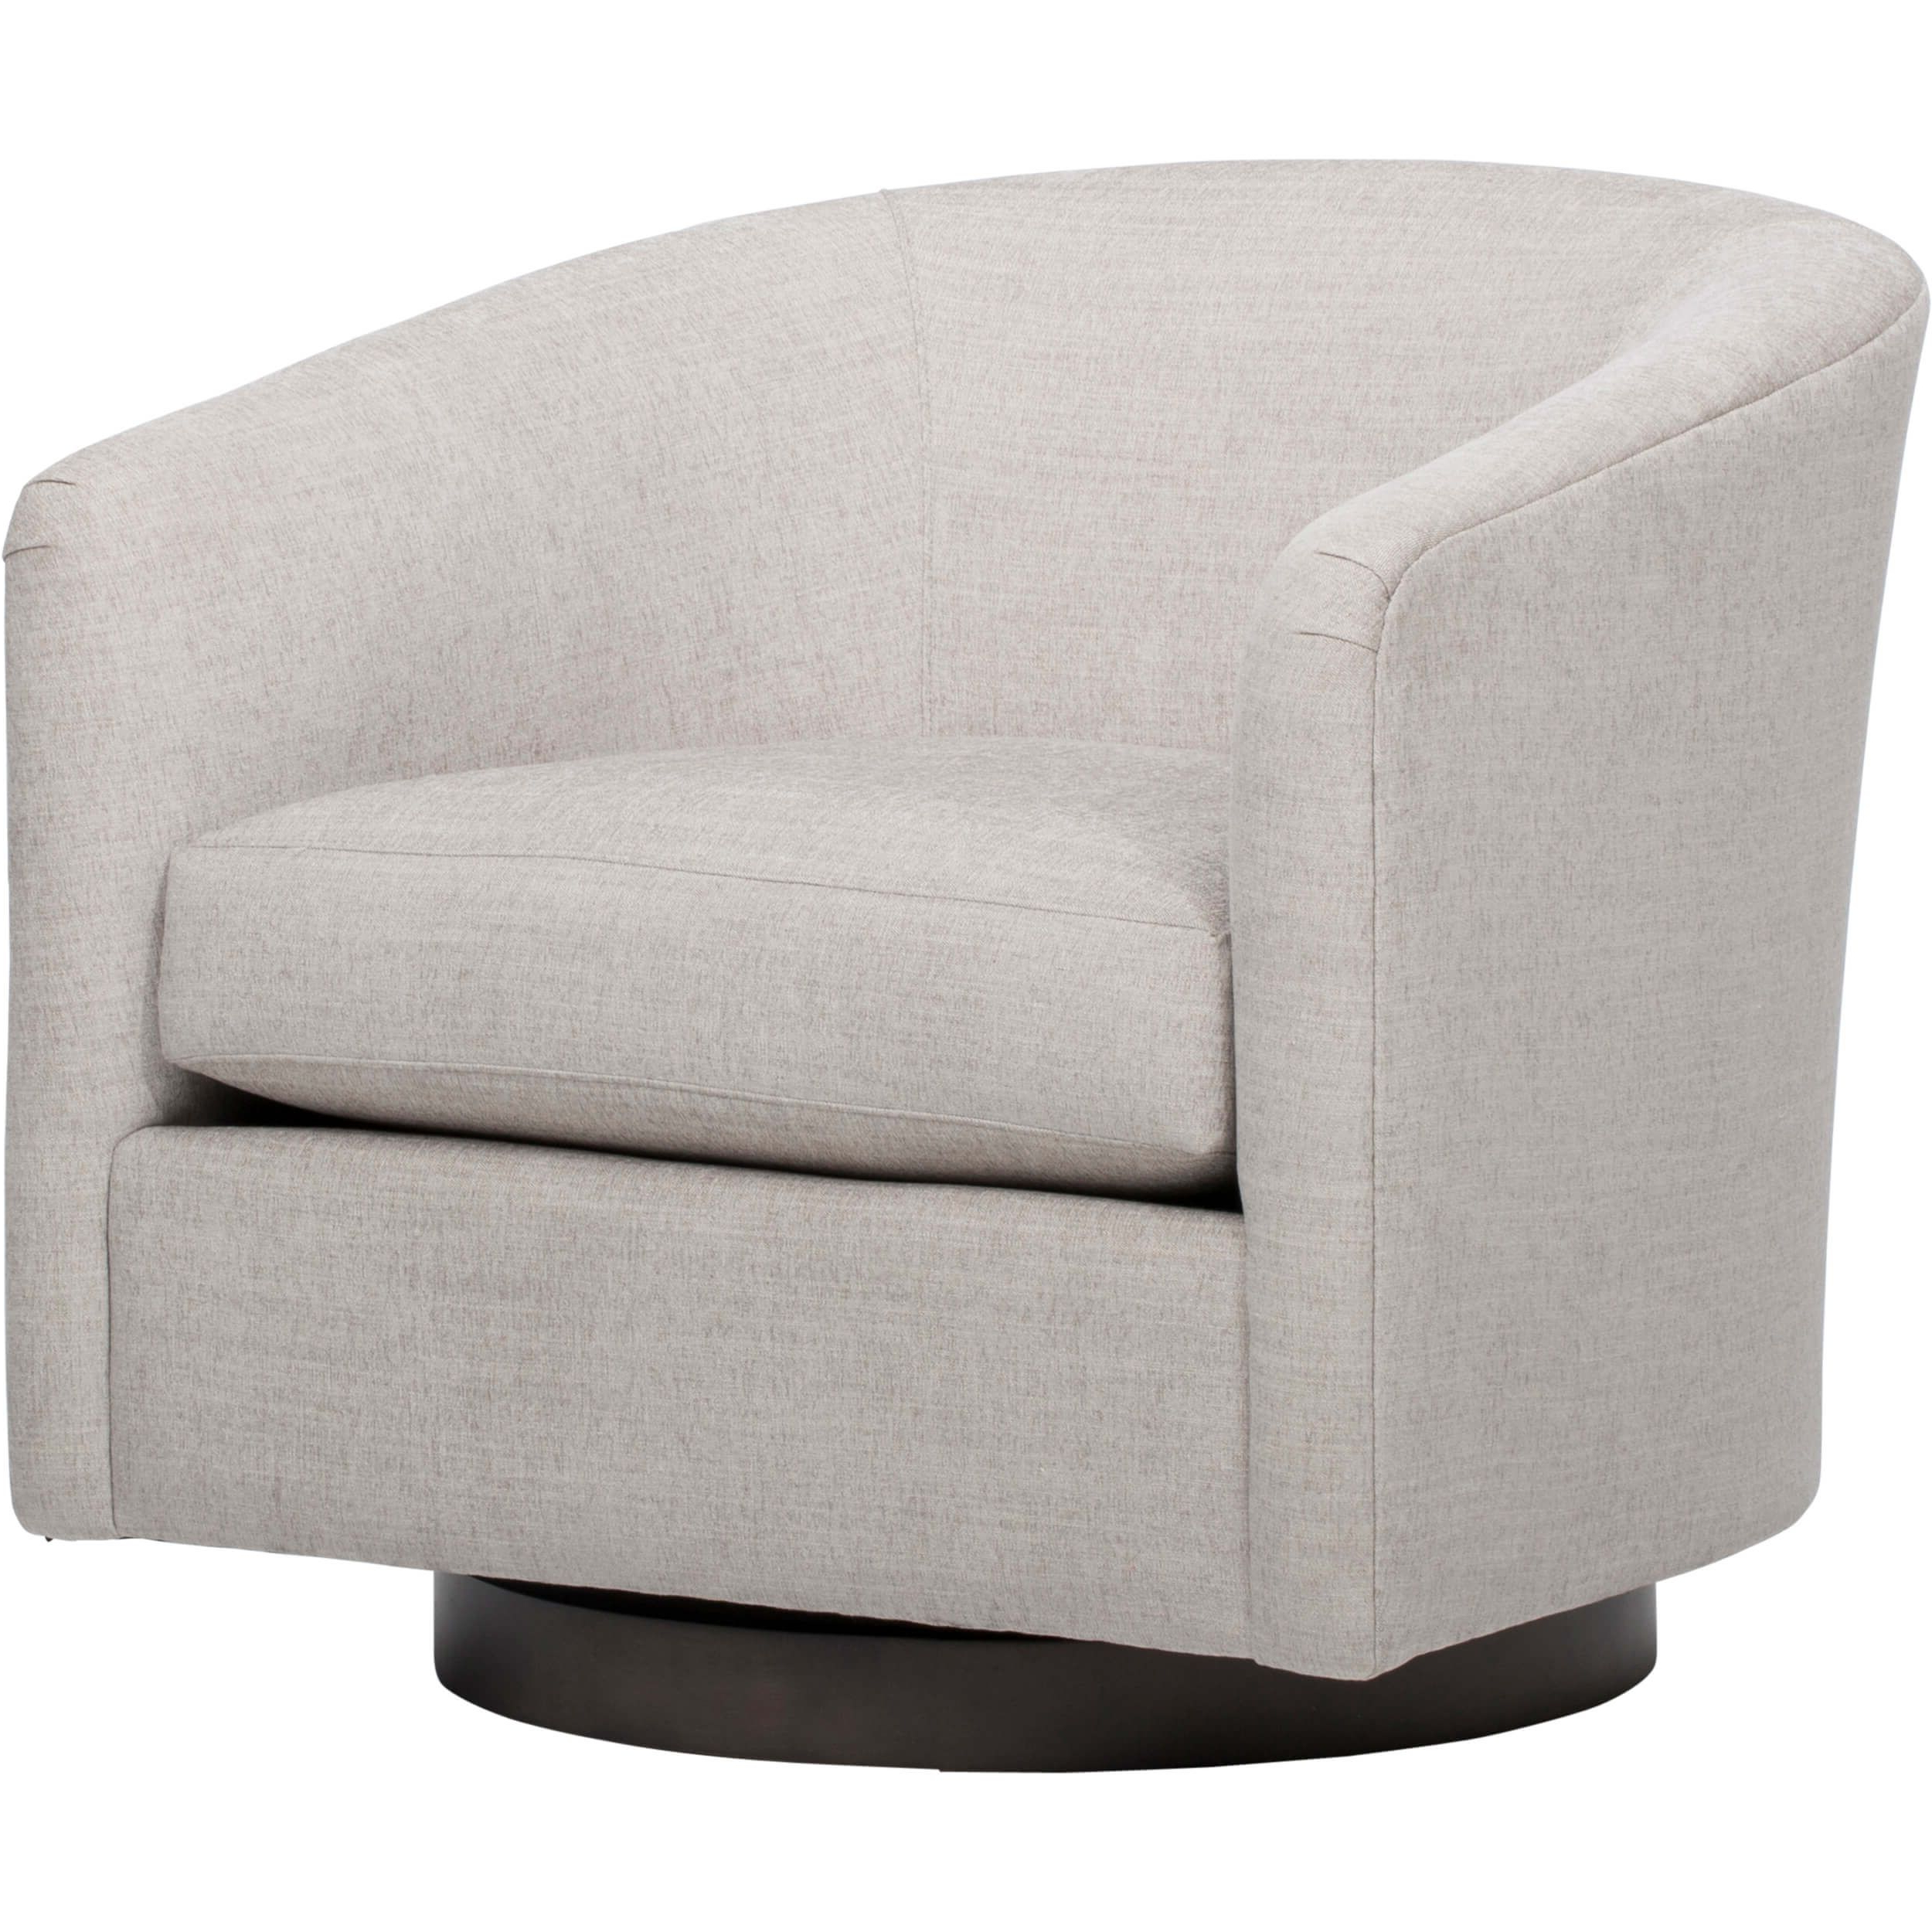 Most Recent Coltrane Swivel Chair, Dame Feather In (View 4 of 20)